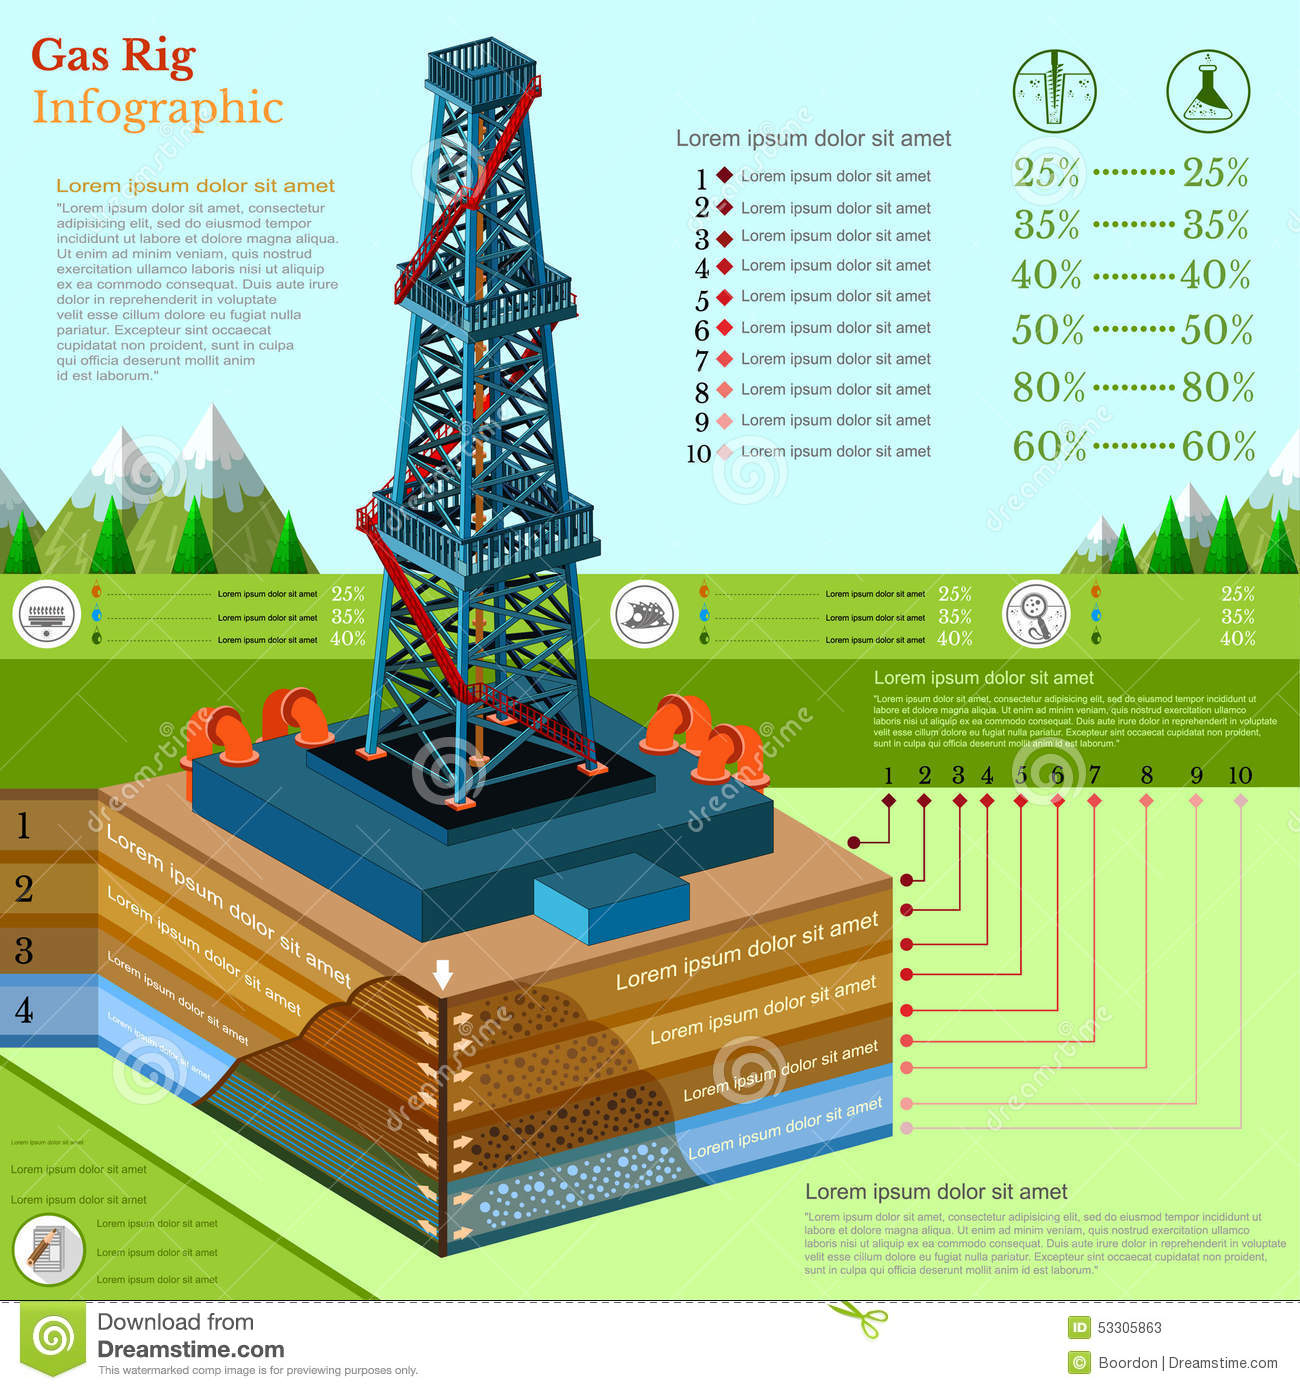 z rig diagram chimney parts oil derrick tower or gas business infographic stock